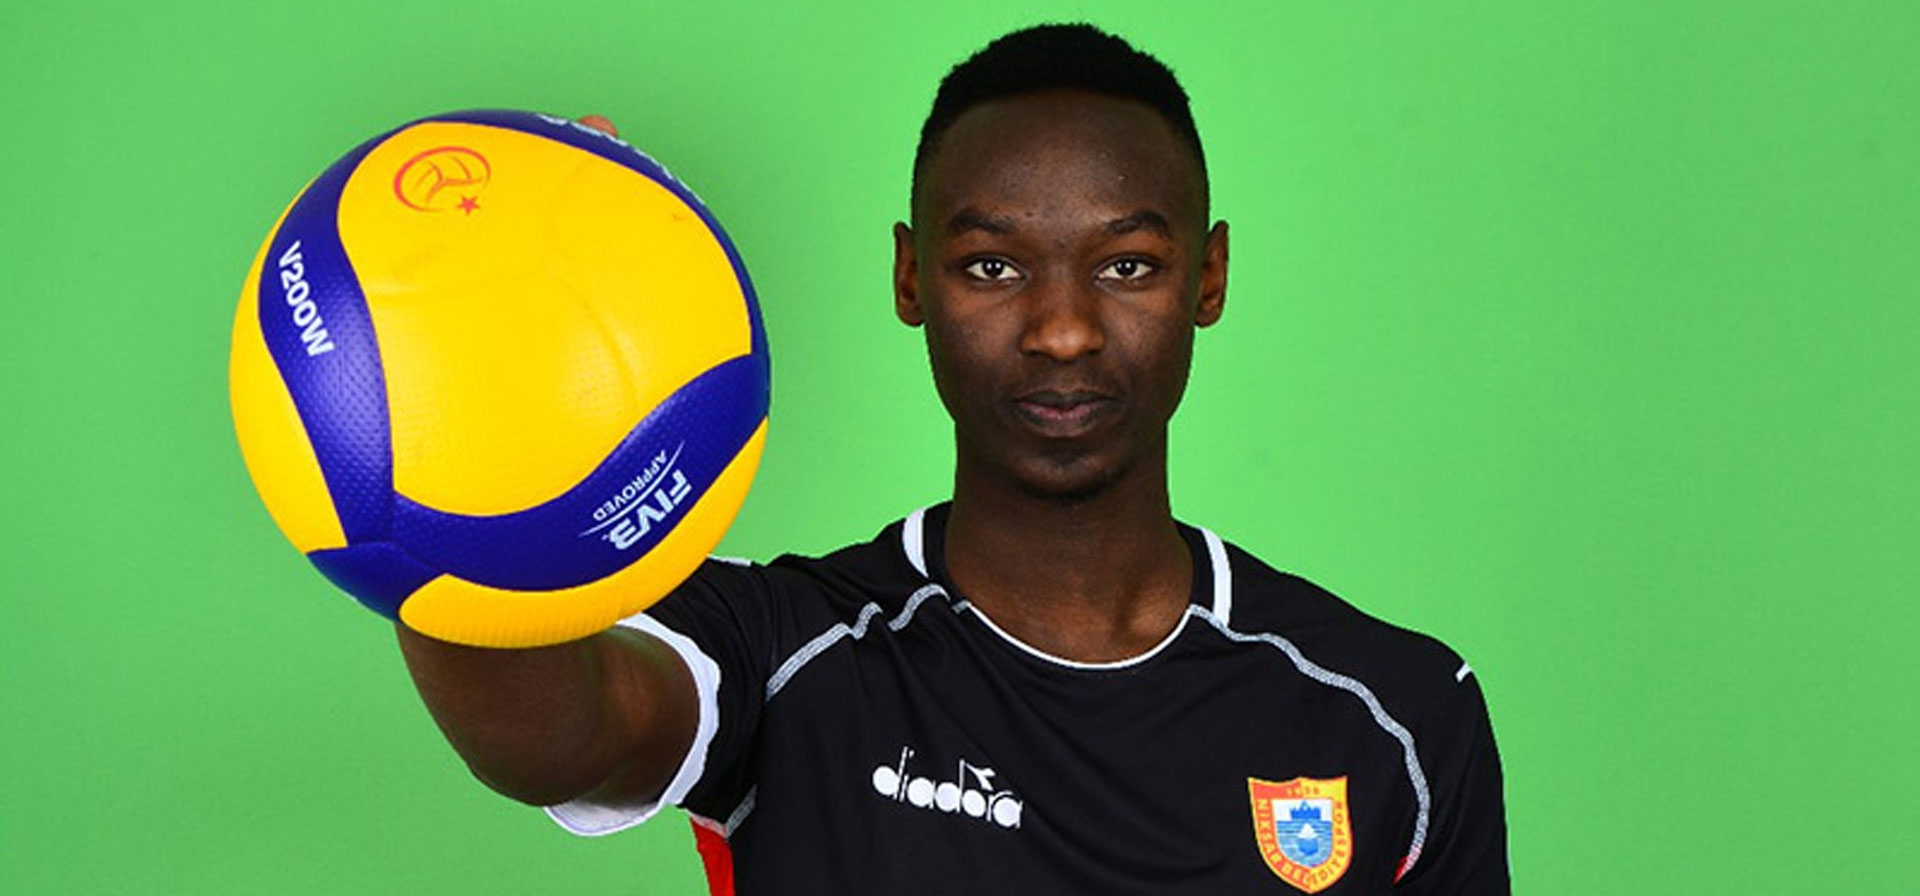 RWANDAN TALENT SIGNED WITH TURKISH CLUB